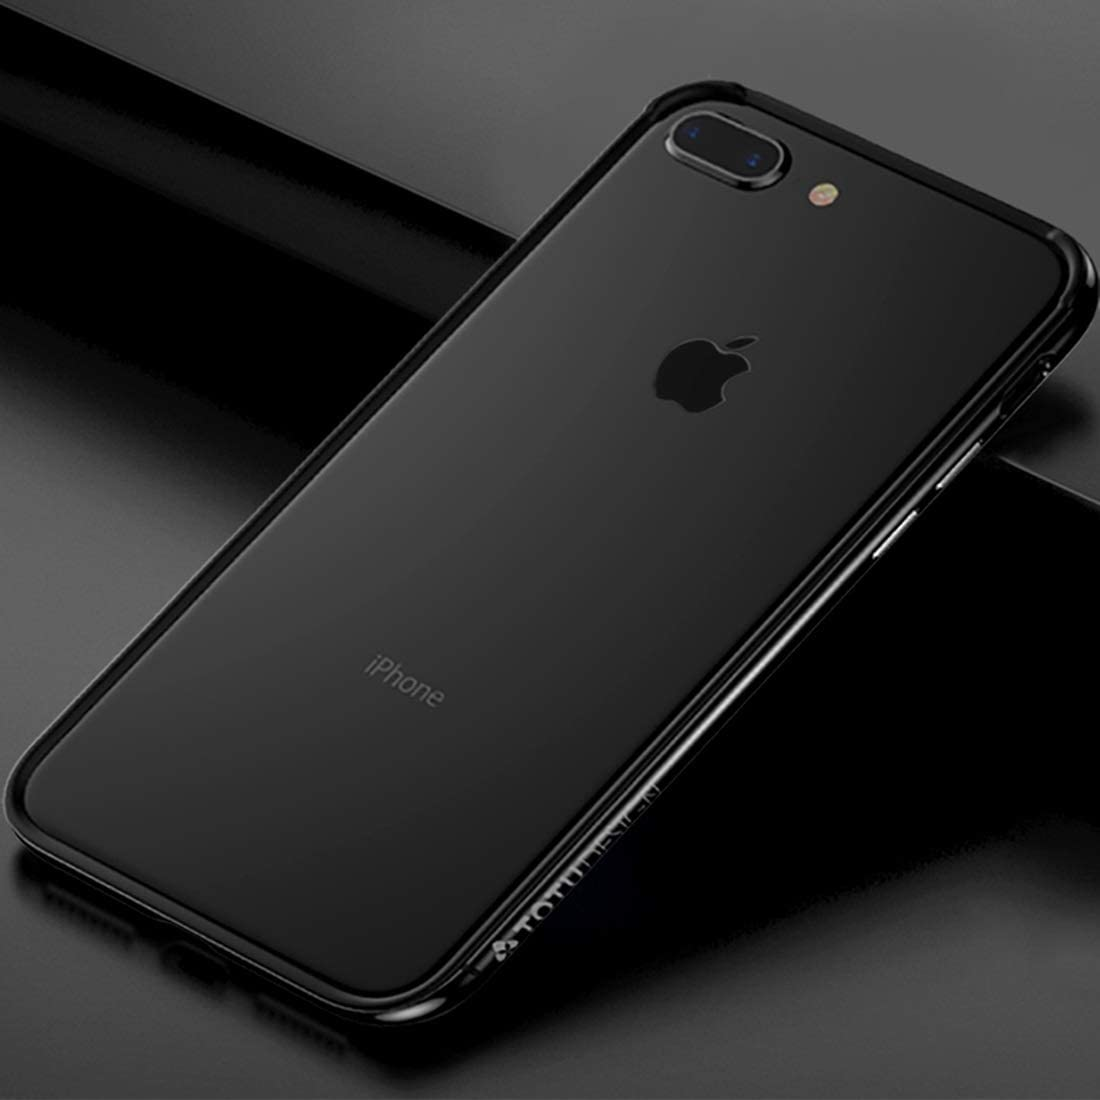 CHAJIJIAO Ultra Slim Case for iPhone 8 Plus & 7 Plus TPU + PC Dropproof Protective Bumper Frame Phone Back Cover (Color : Black)